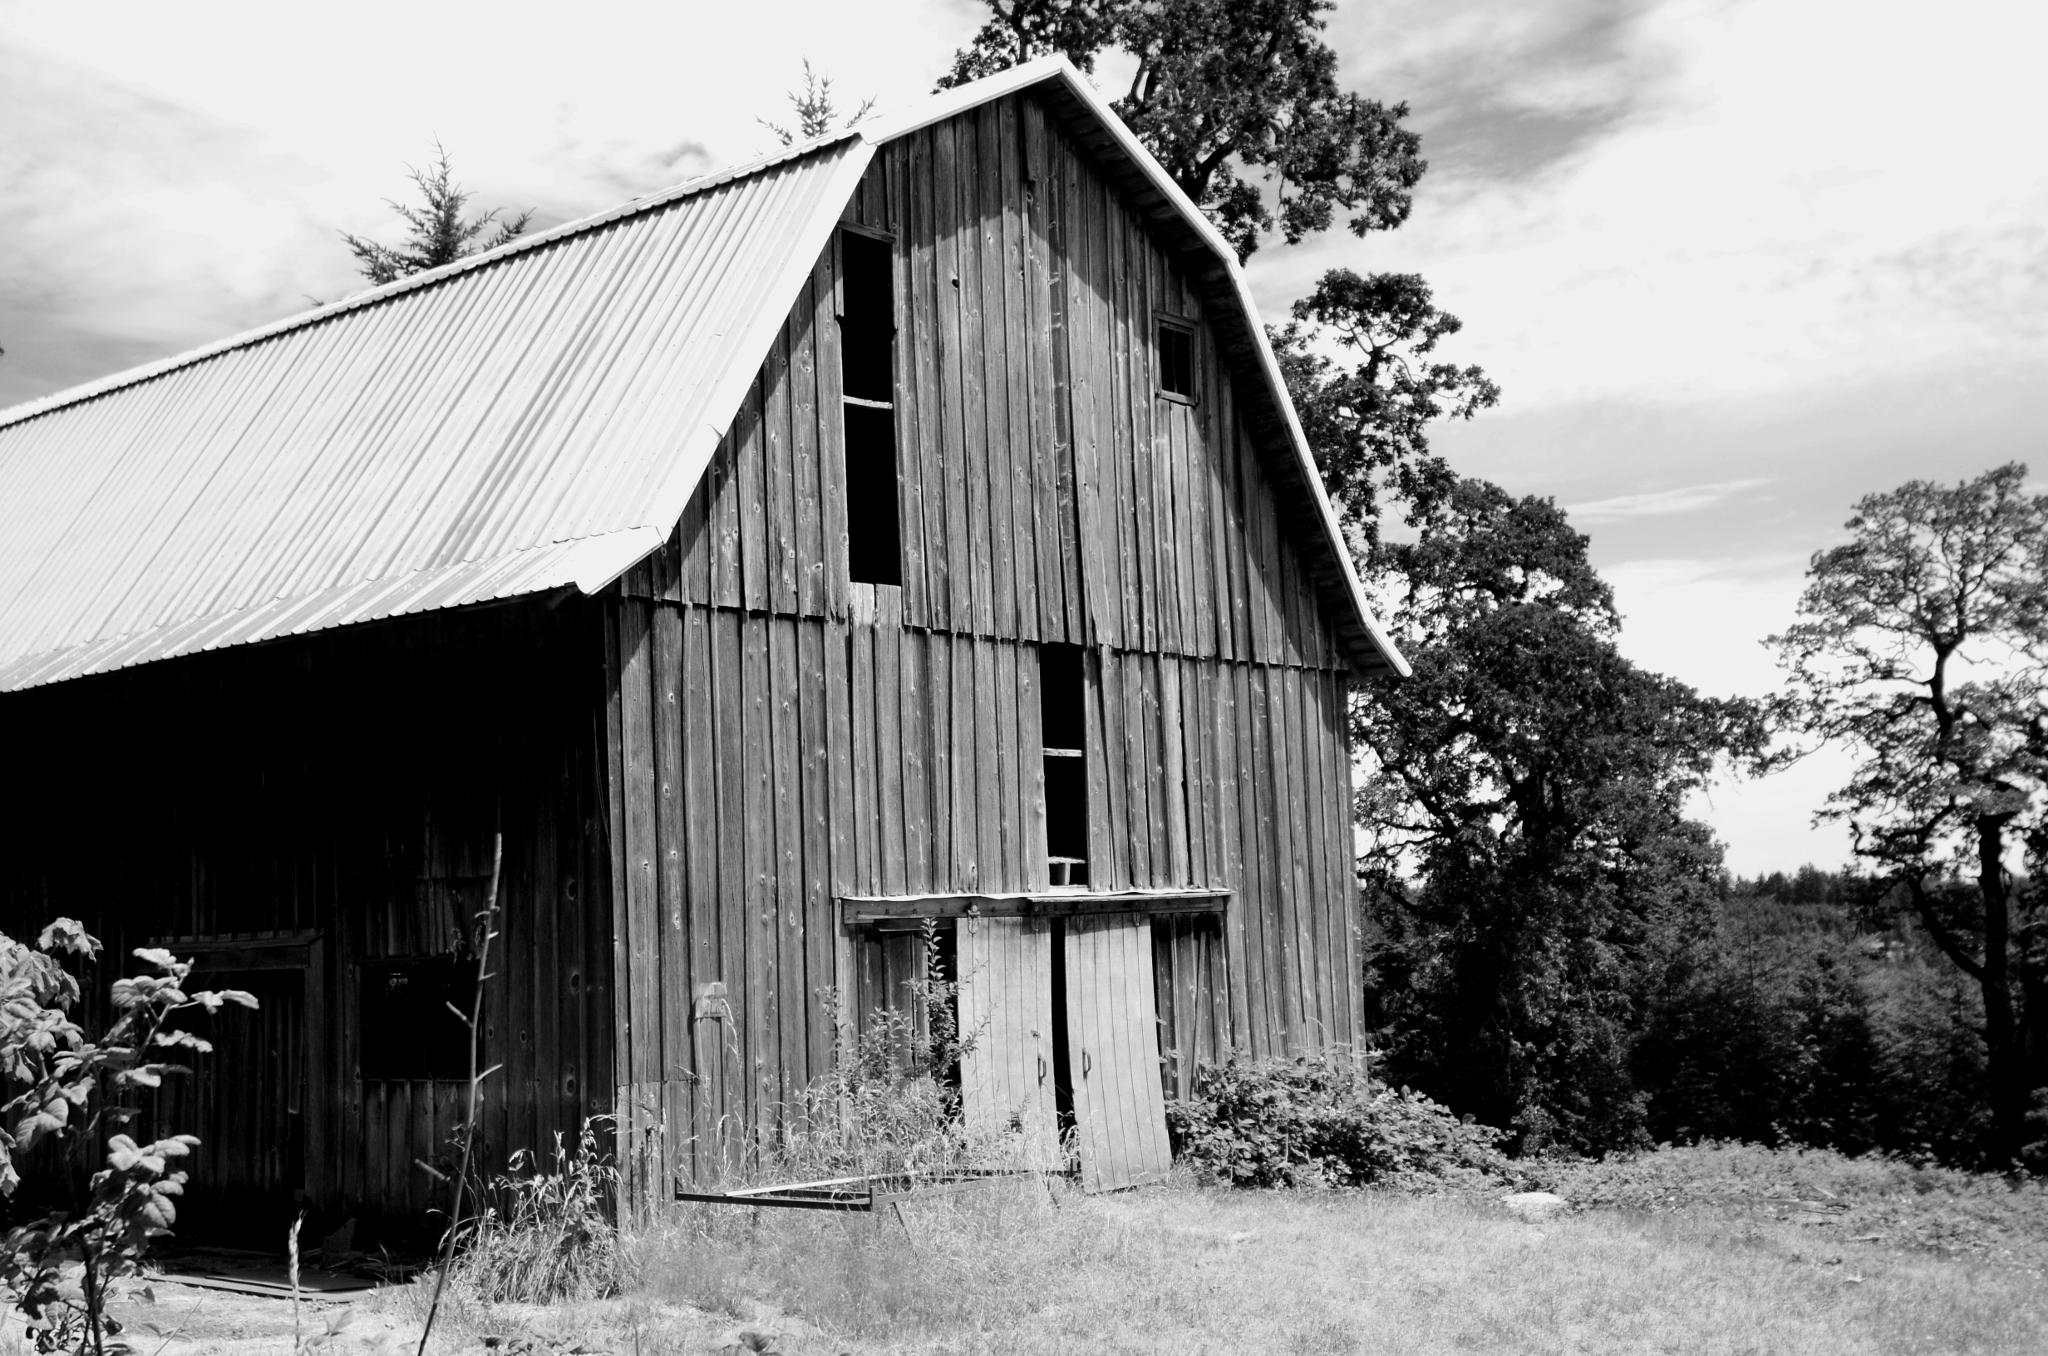 Old Barn Black and White 2 by Boonietunes